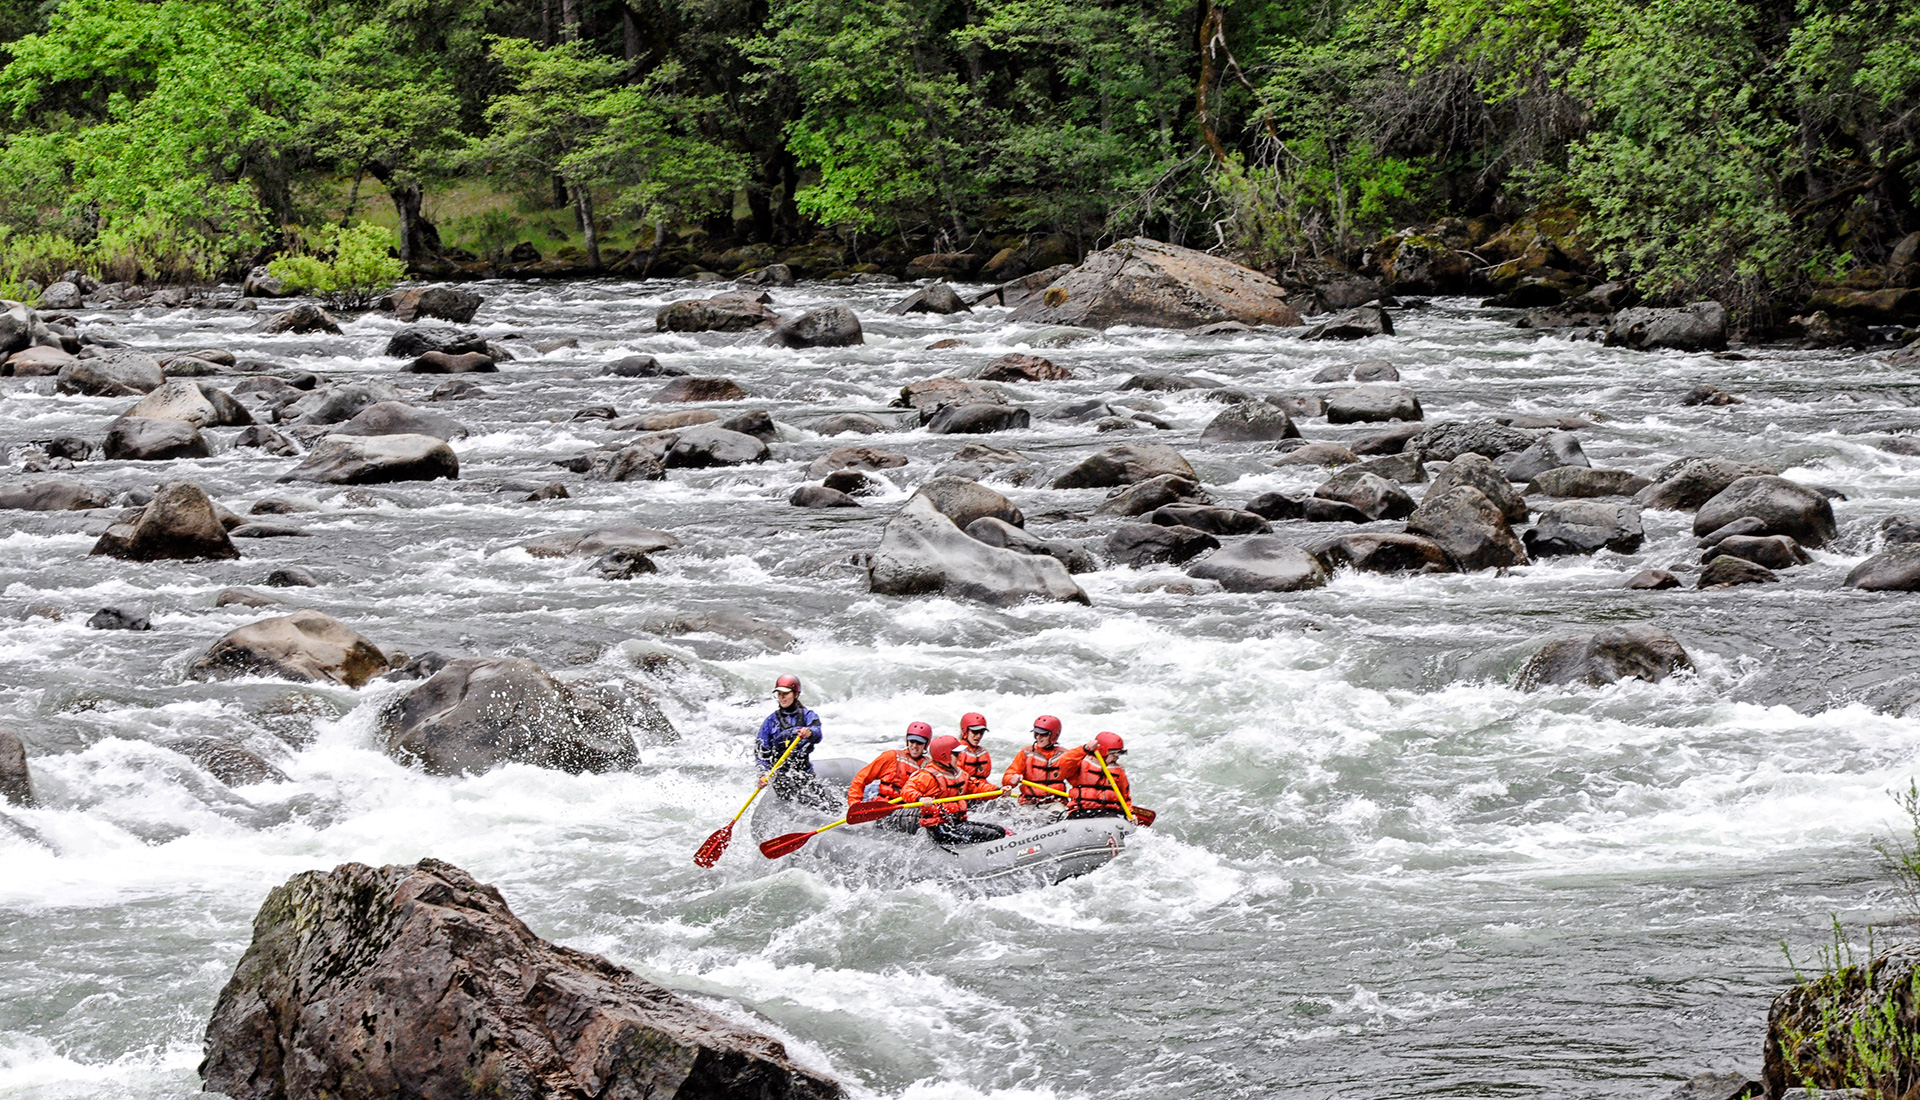 The 4 R's: Rivers, Rock, Rafts, & Rafters